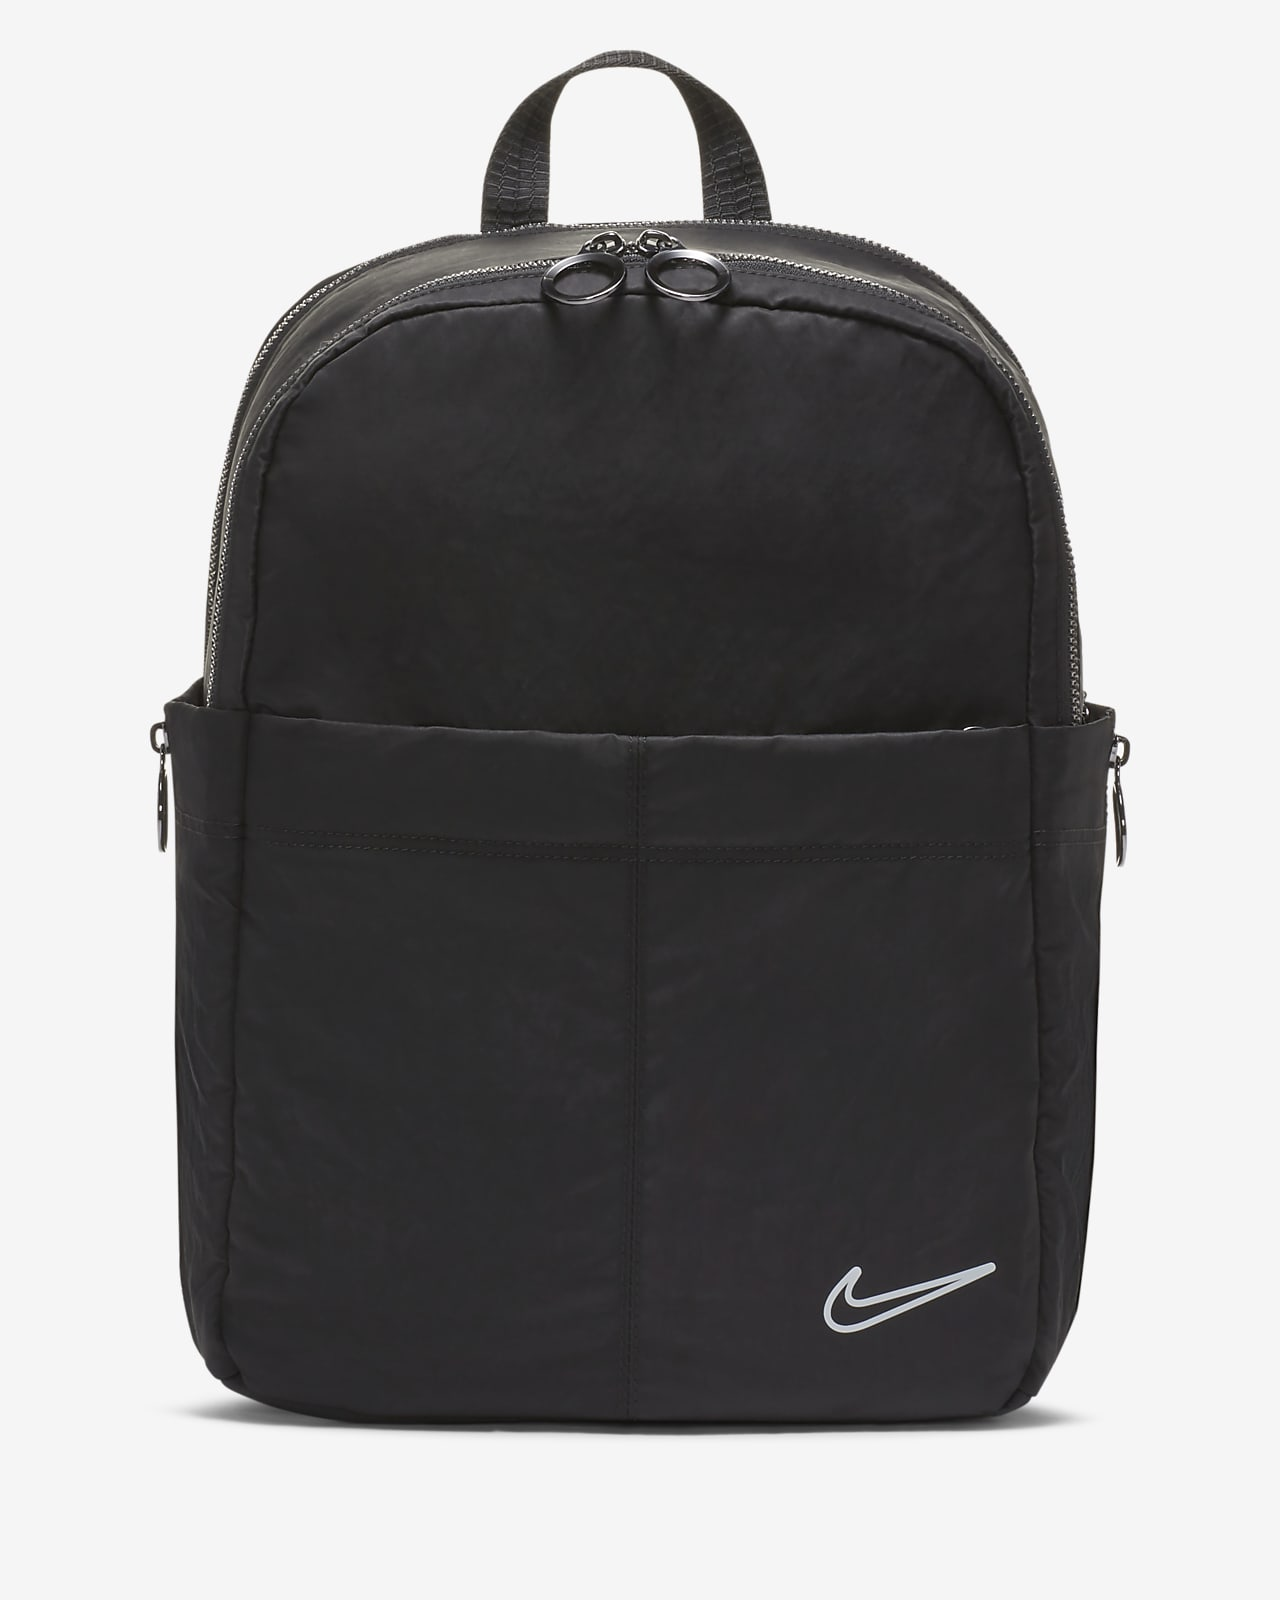 Nike One Luxe Women's Backpack